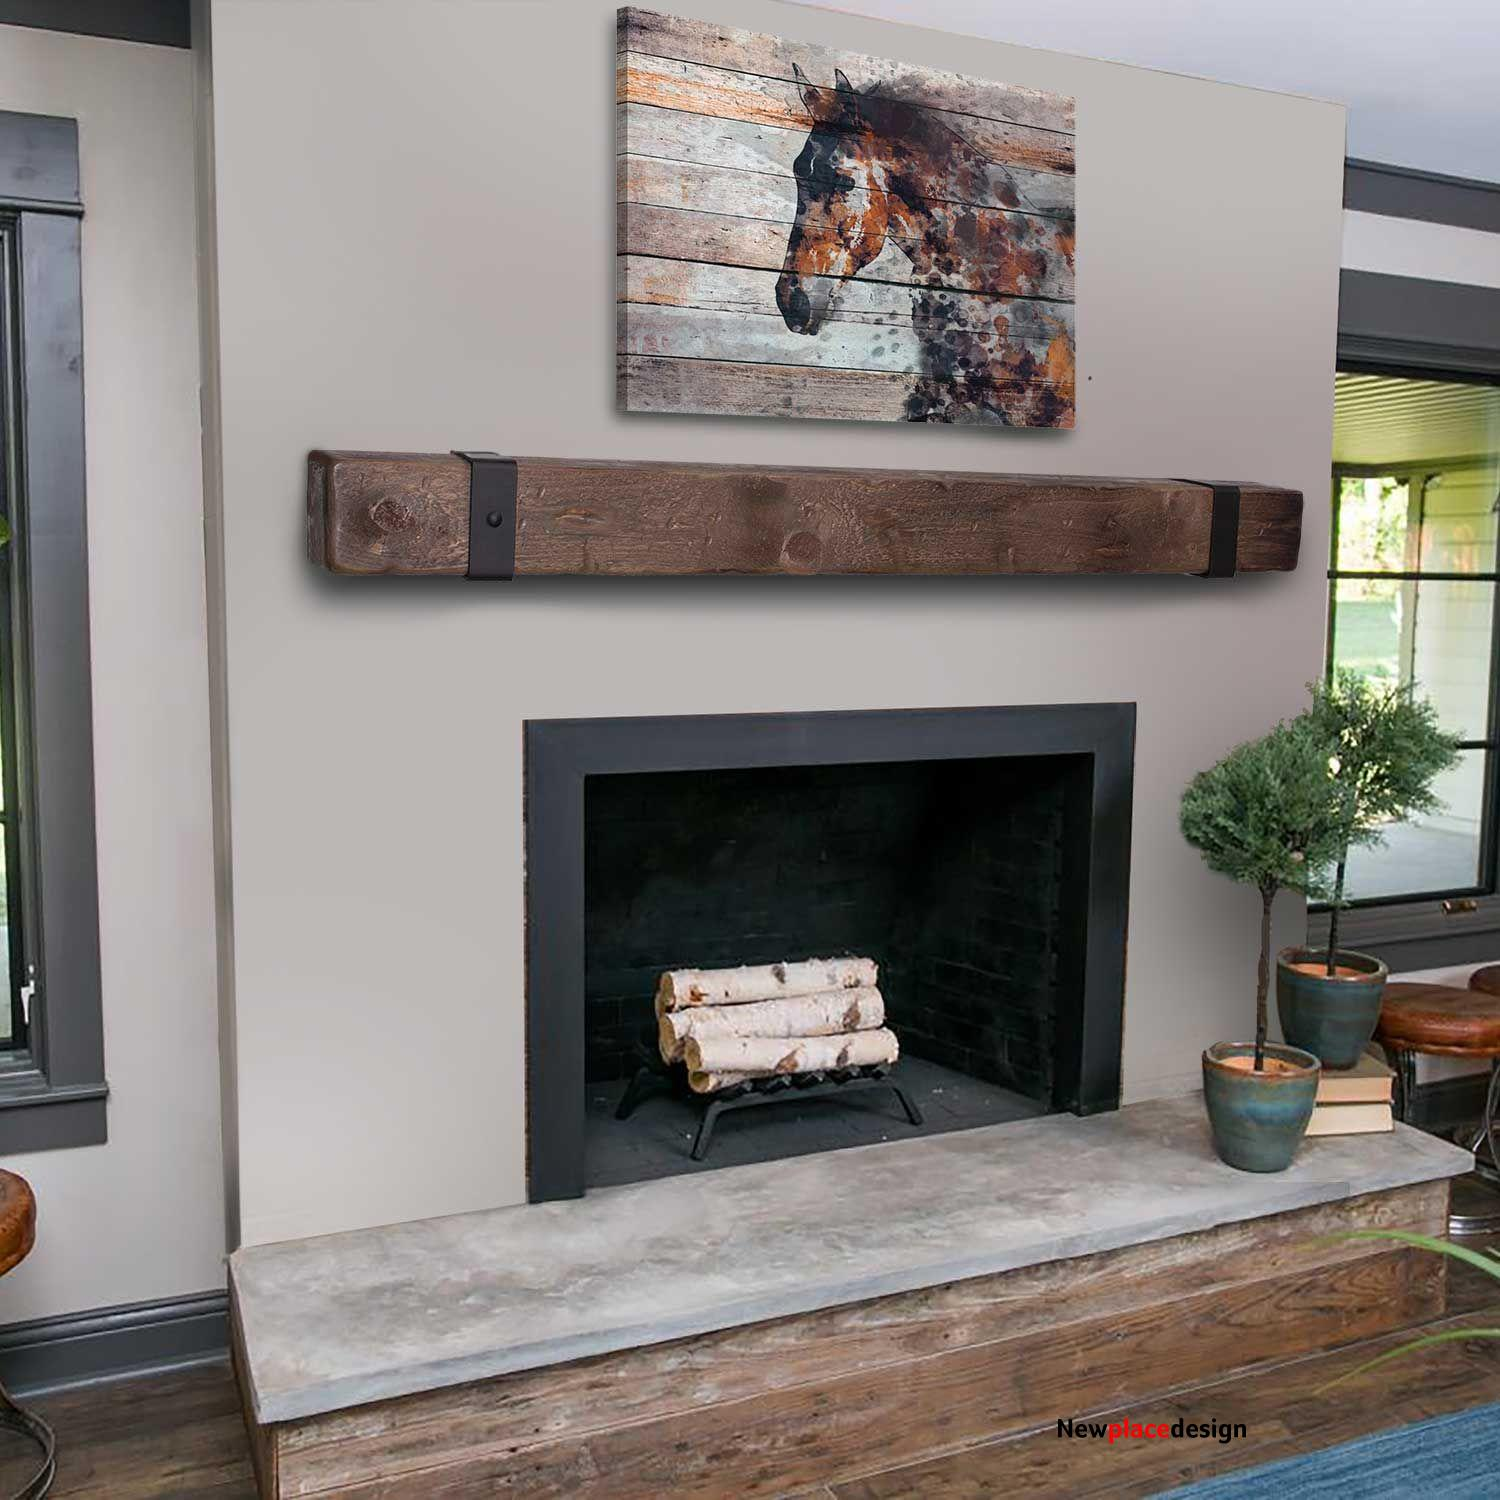 Rustic Mantel with Metal Rivet Straps - 78L / 8H x 8D / Early American